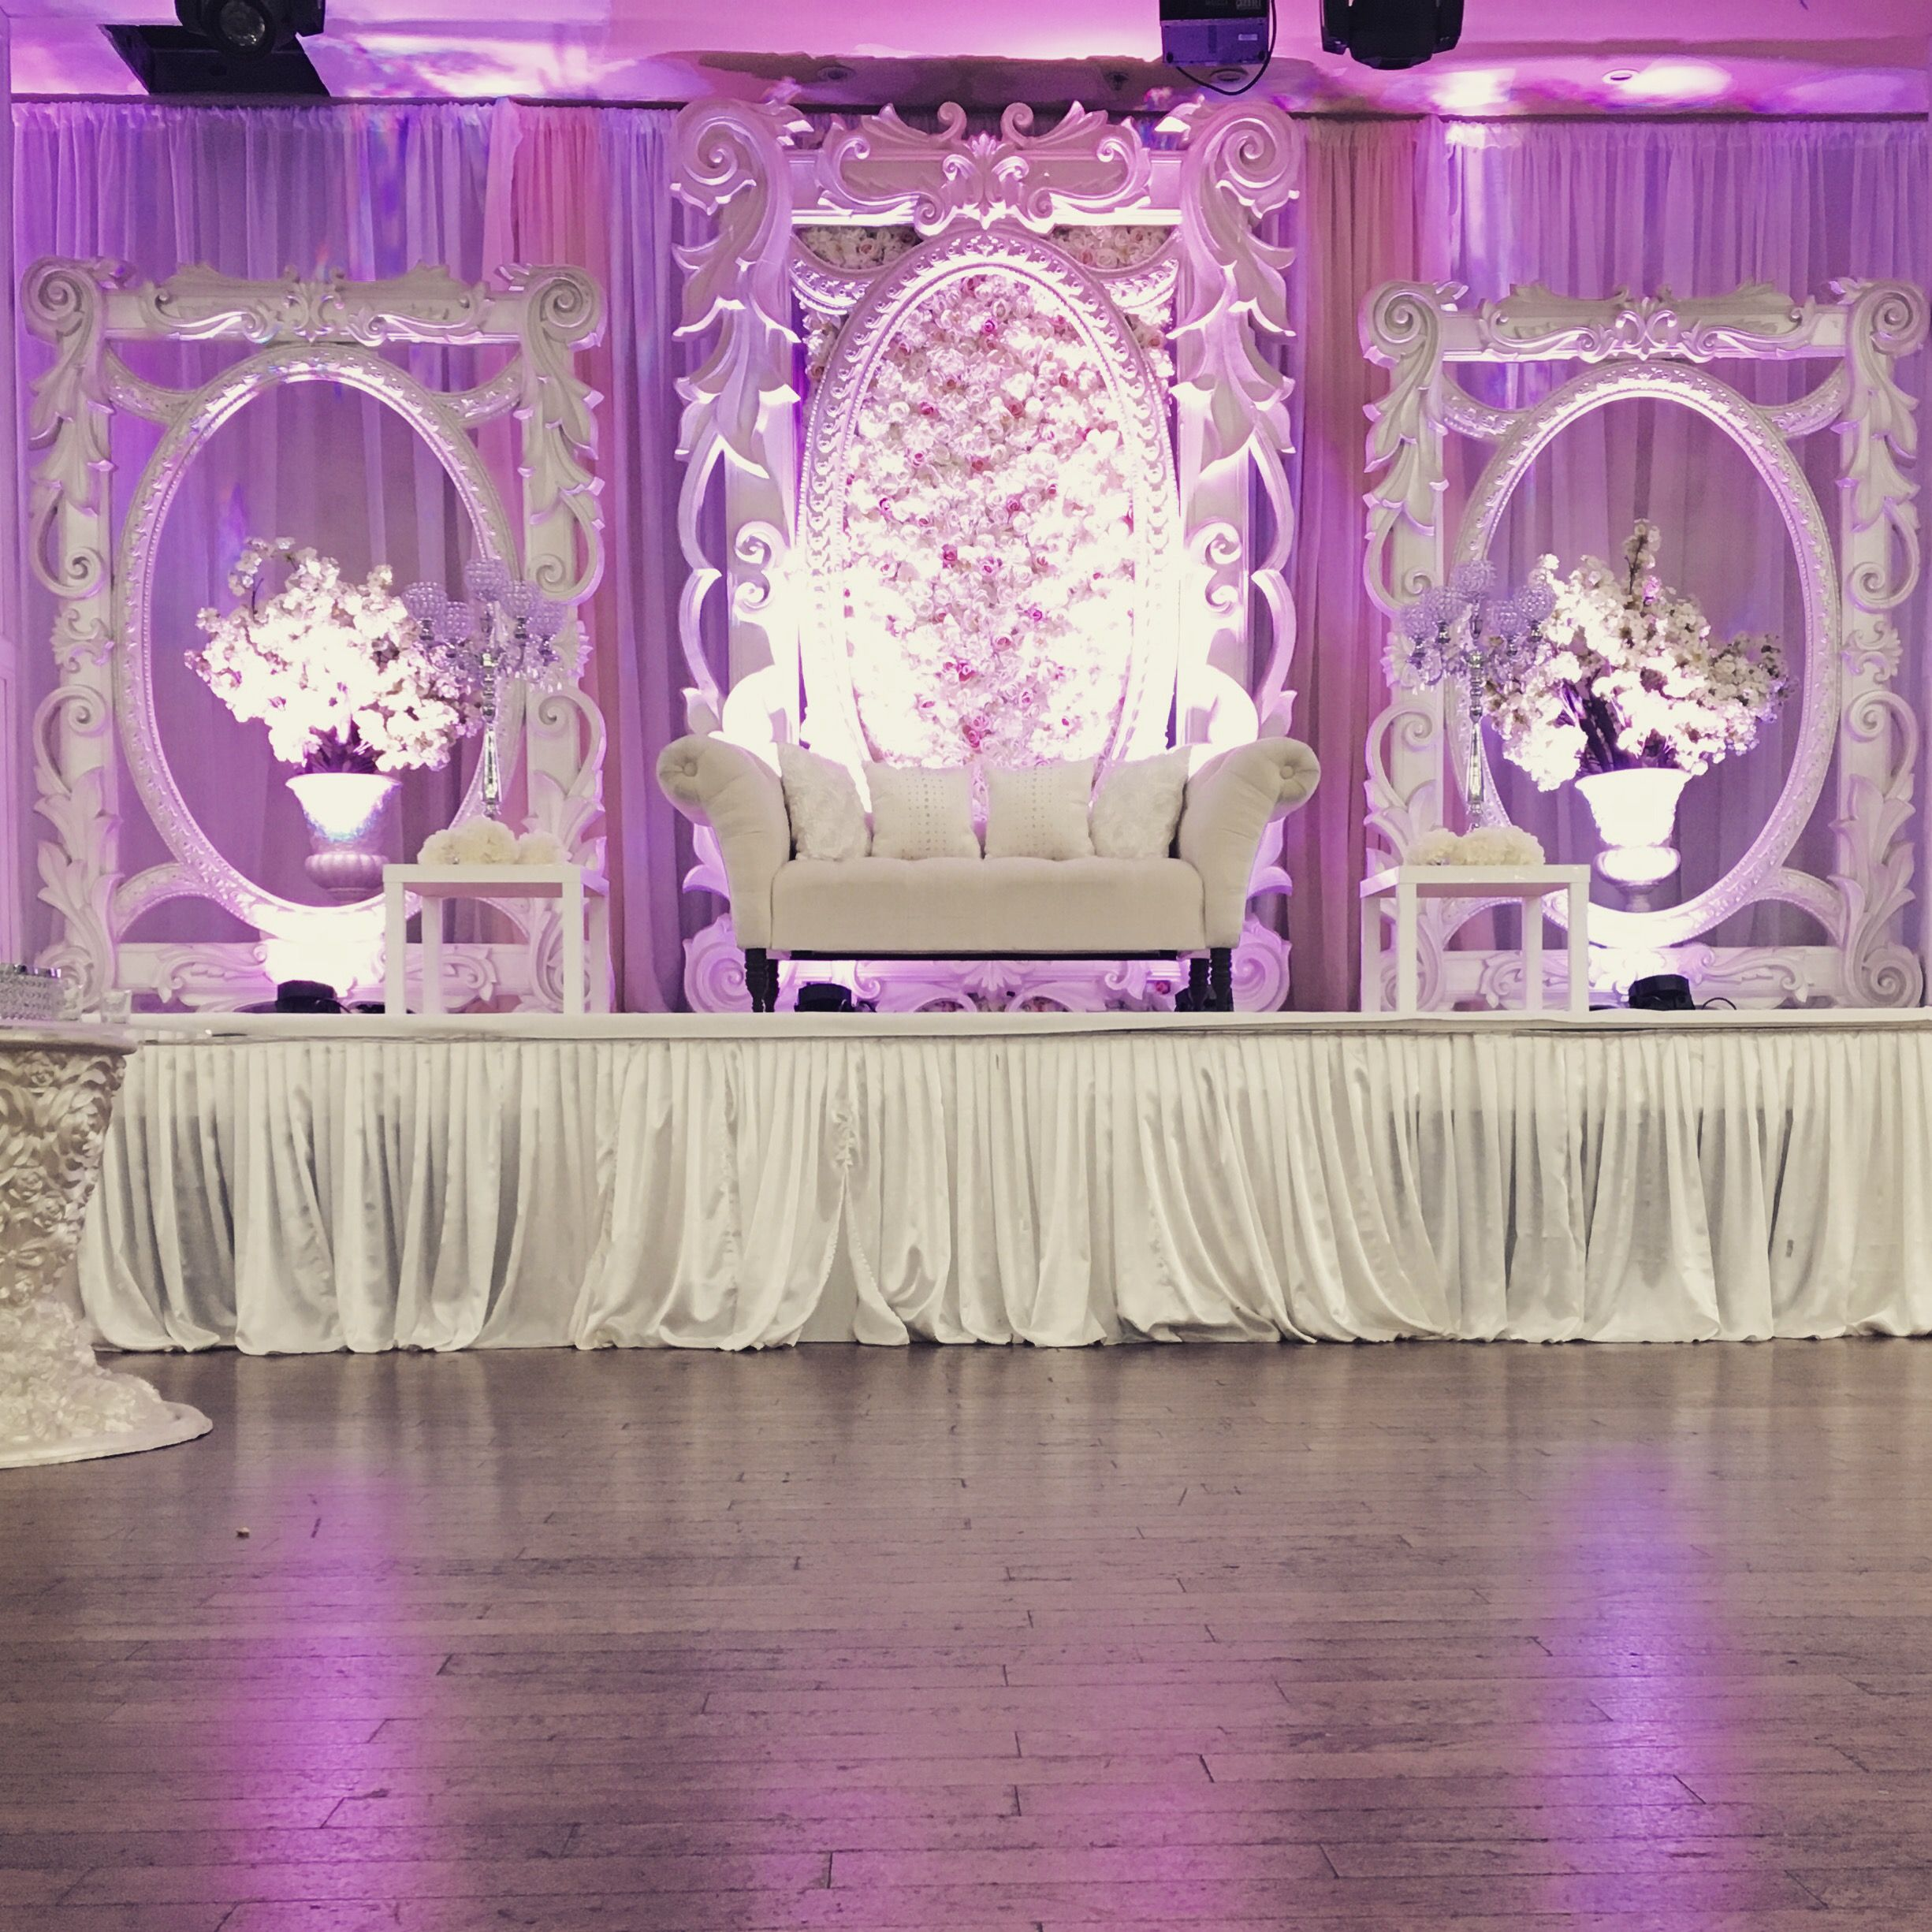 Outdoor Wedding Ceremony Calgary: Pin By Vitthal S Meharwade On Srm